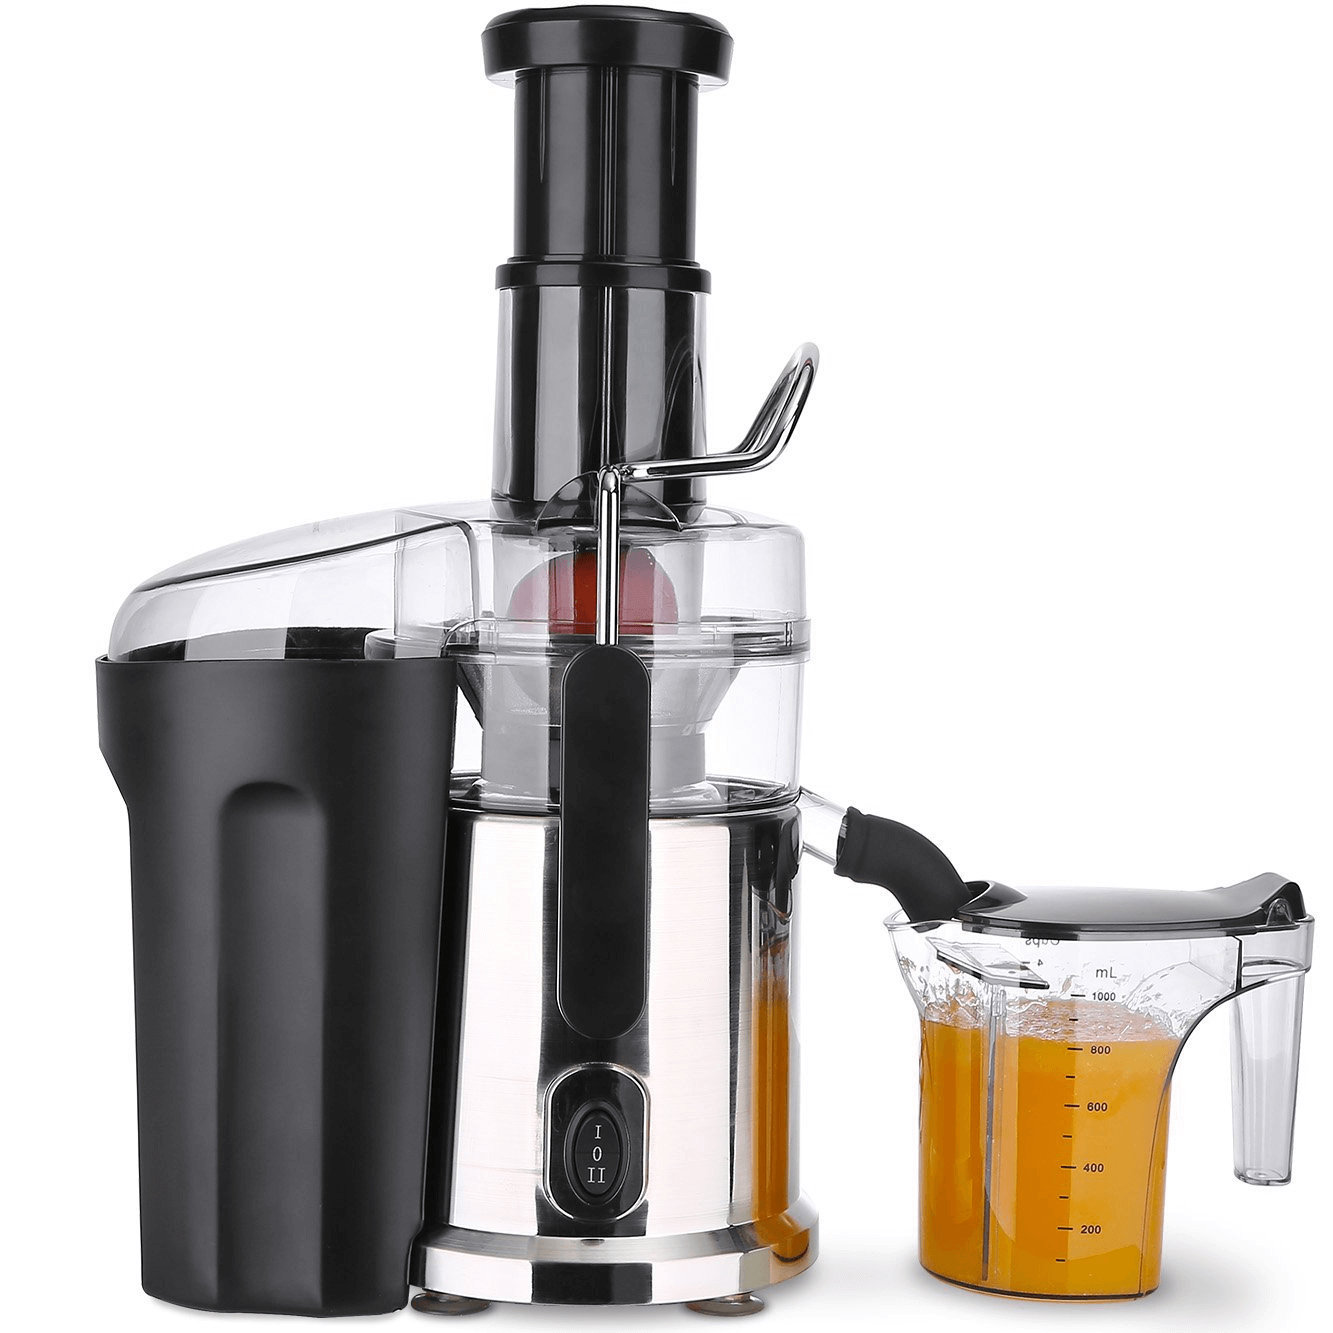 XIAOL Juice Extractor